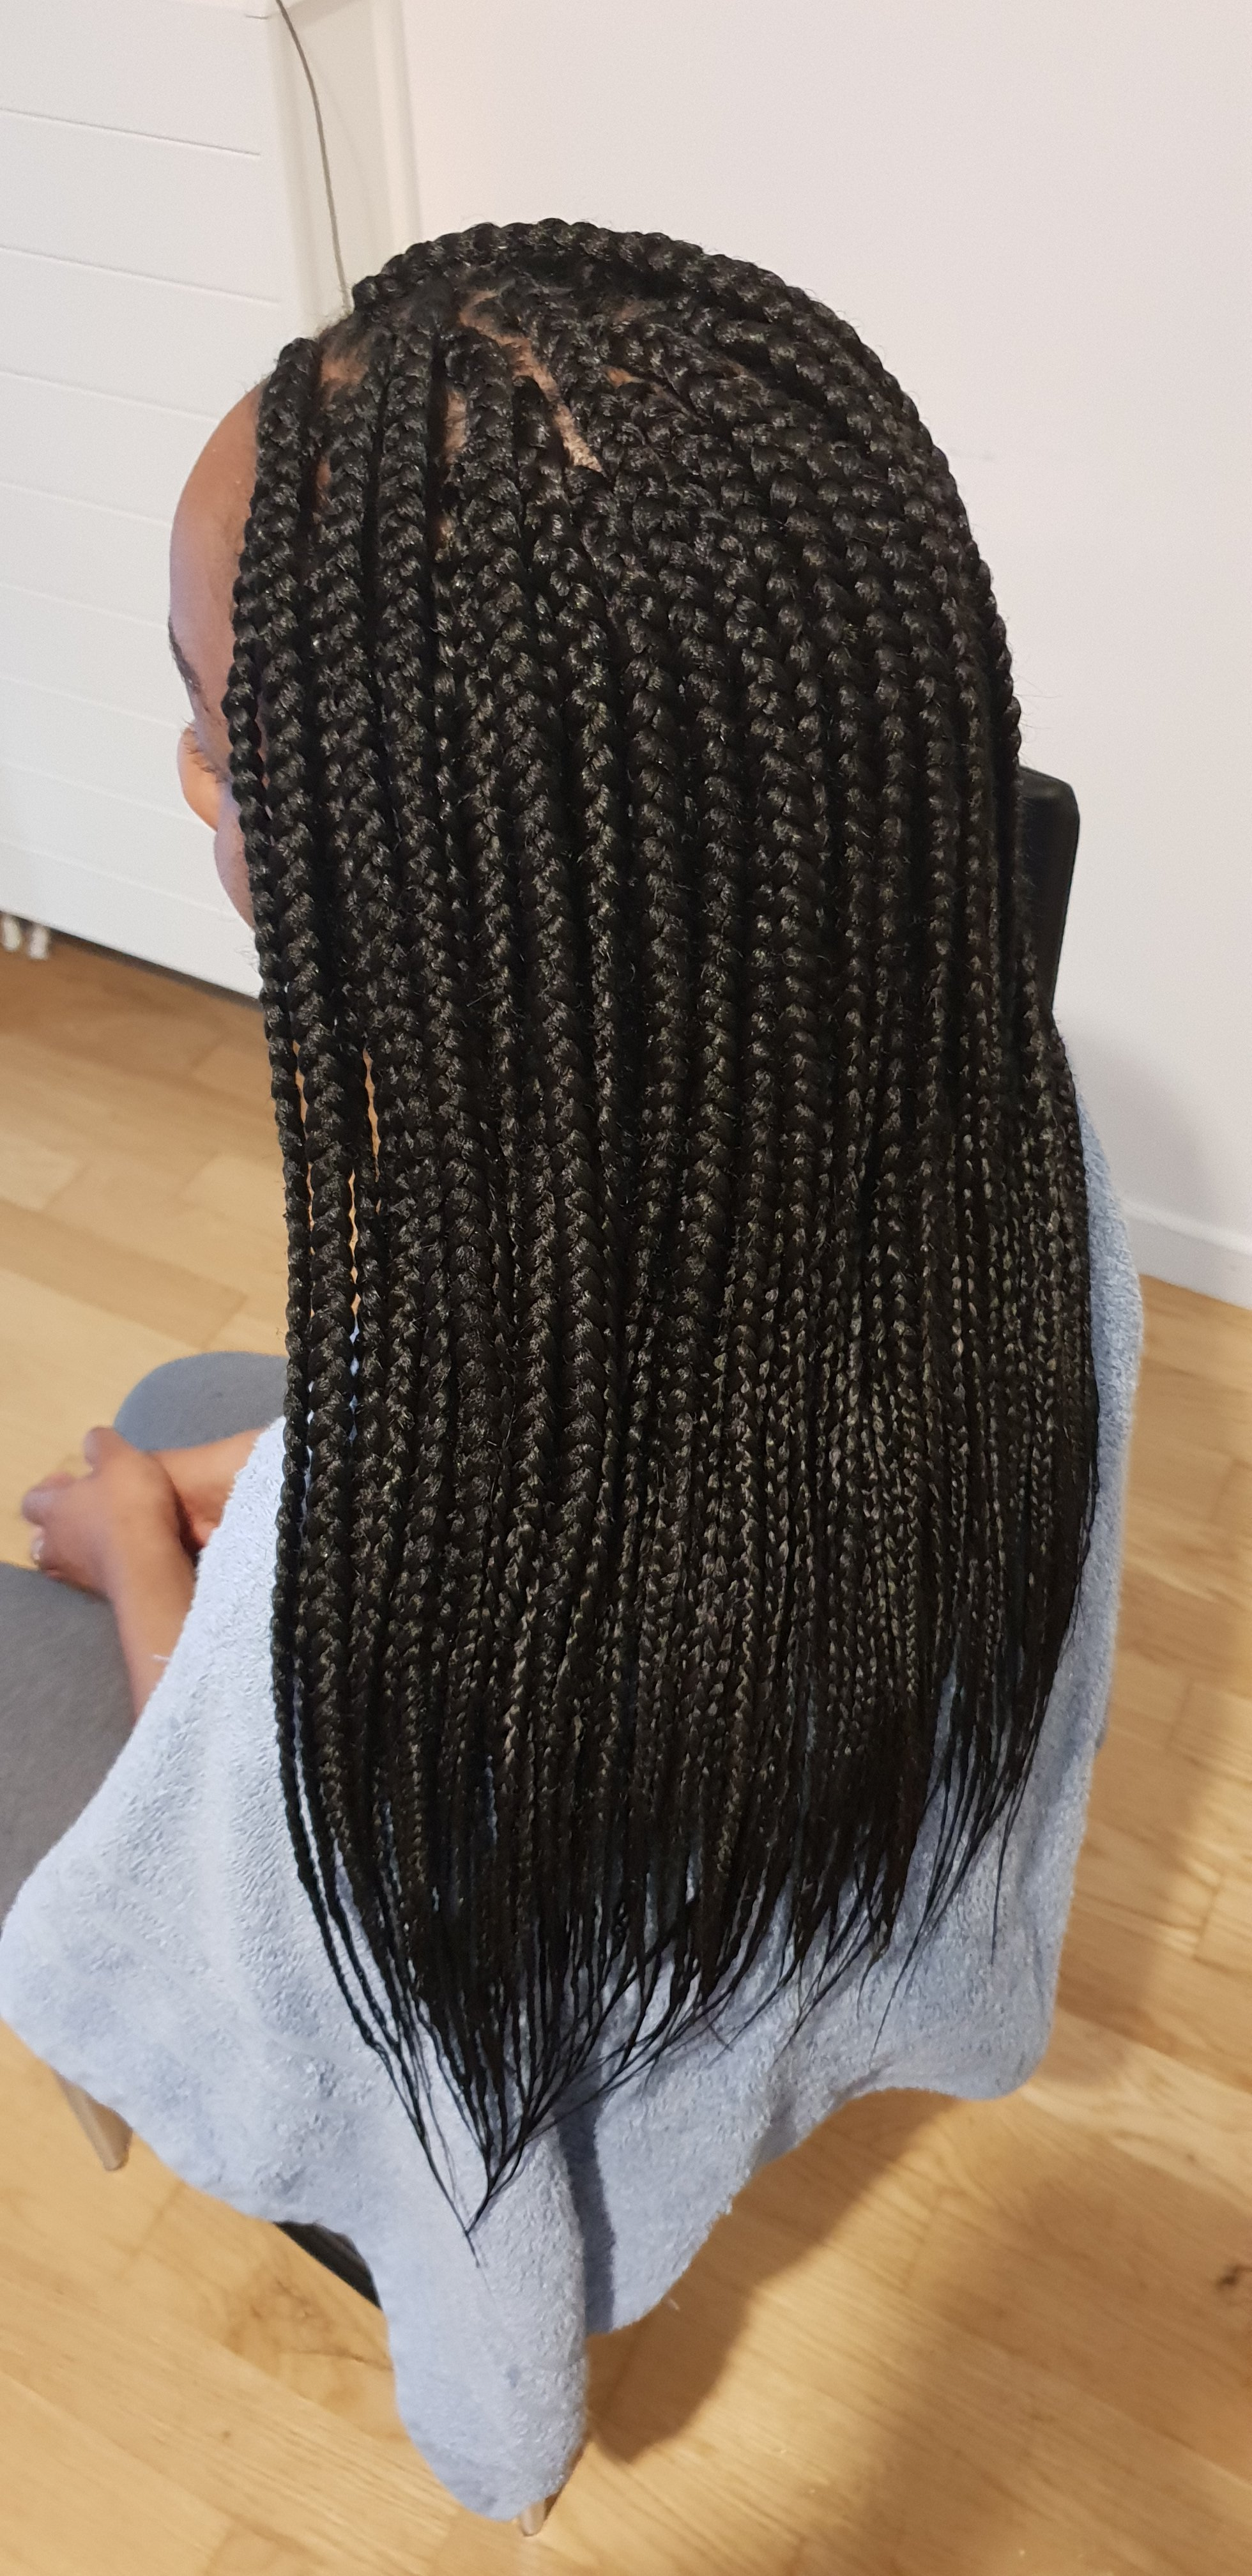 salon de coiffure afro tresse tresses box braids crochet braids vanilles tissages paris 75 77 78 91 92 93 94 95 EYNNKDPY